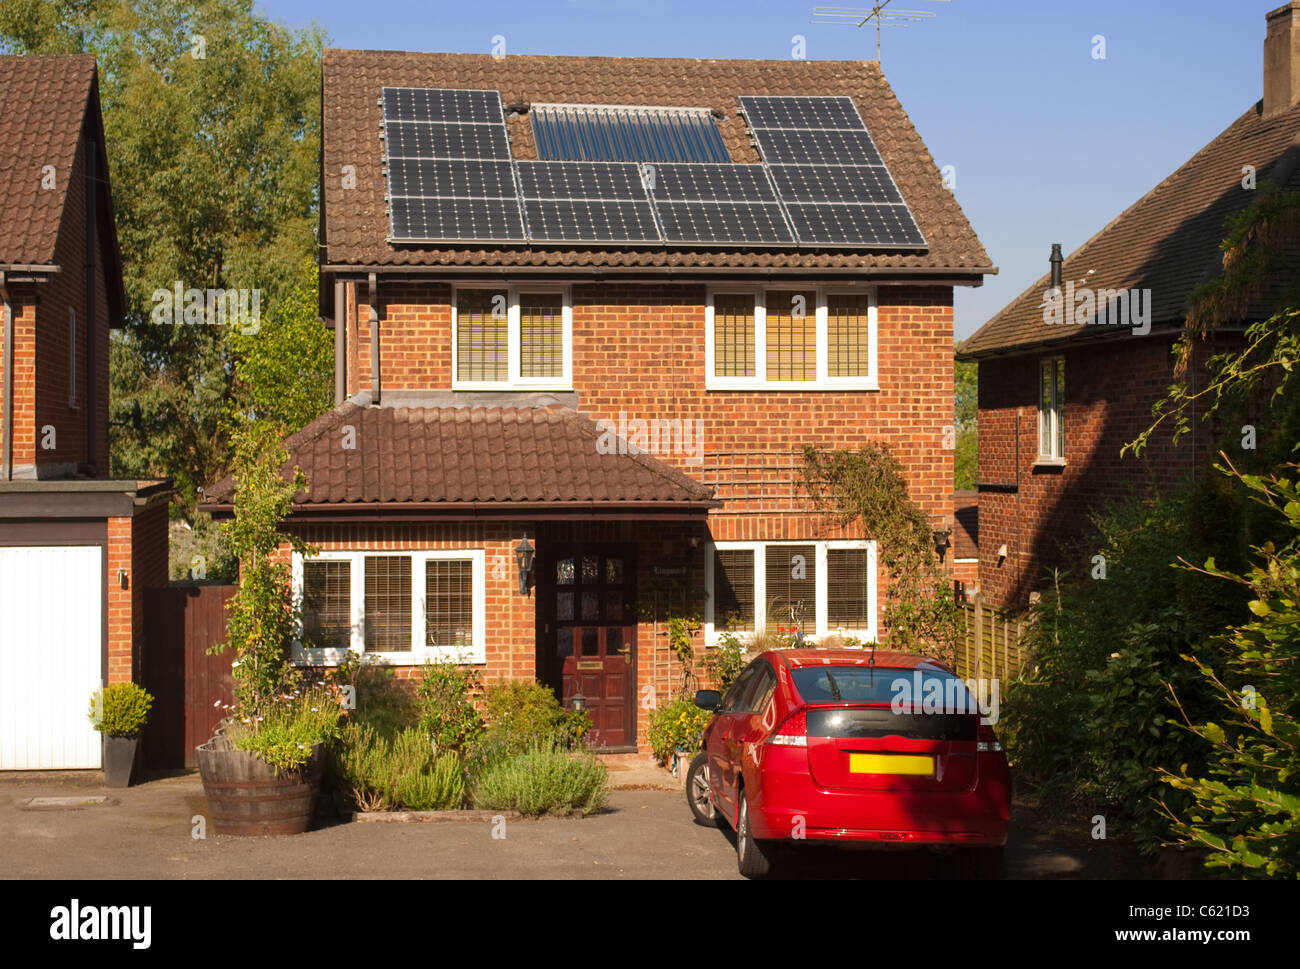 Solar panels on house roof with regenerative energy system - Stock Image